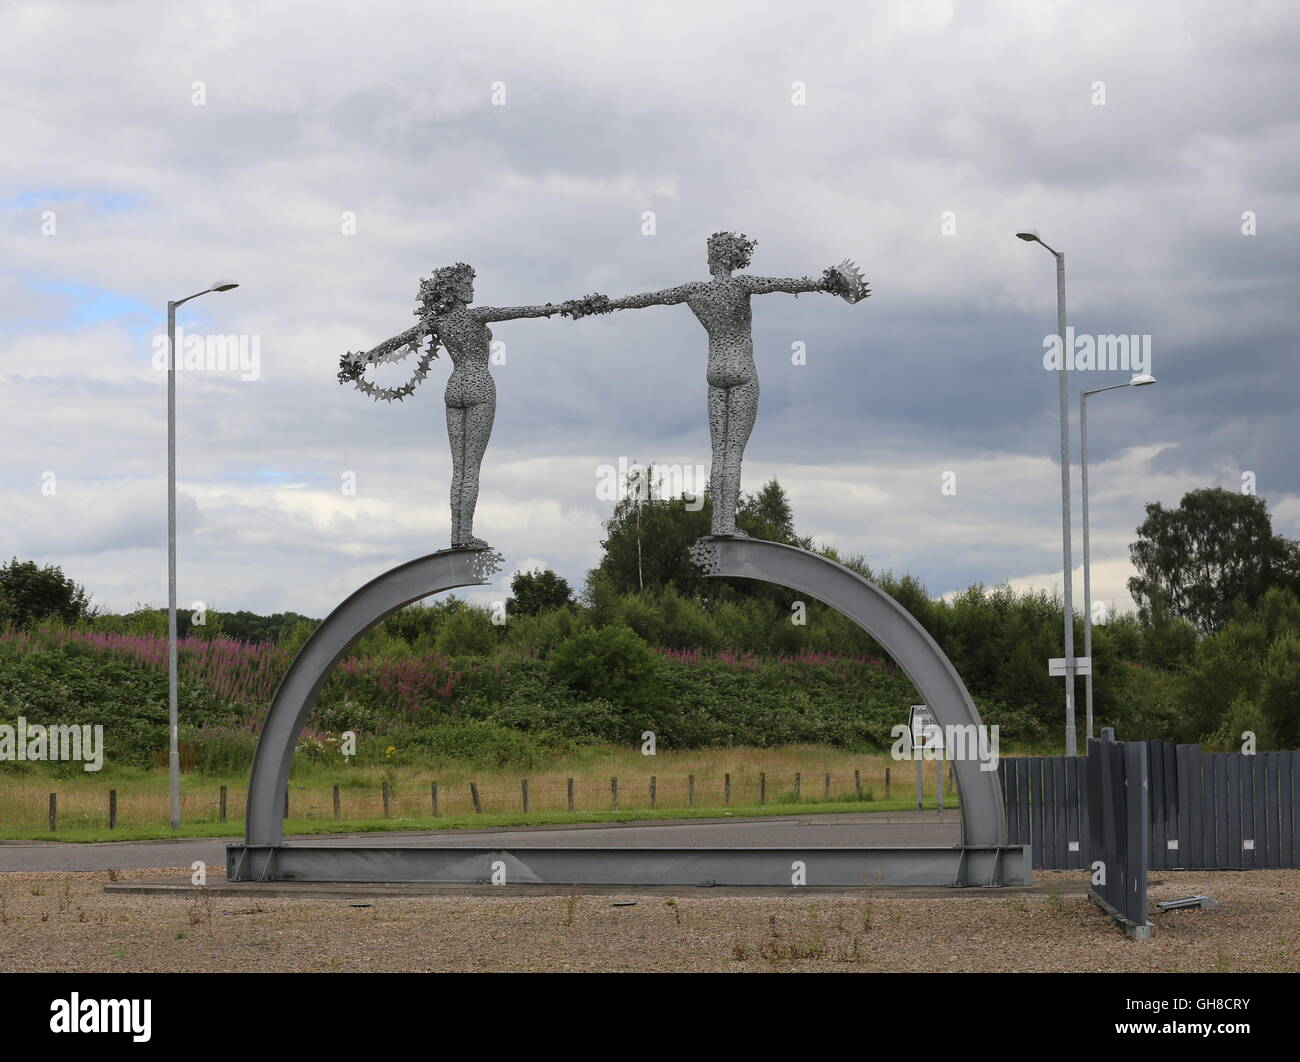 This Journey's End sculpture by Andy Scott Alloa Clackmannanshire Scotland  July 2016 - Stock Image